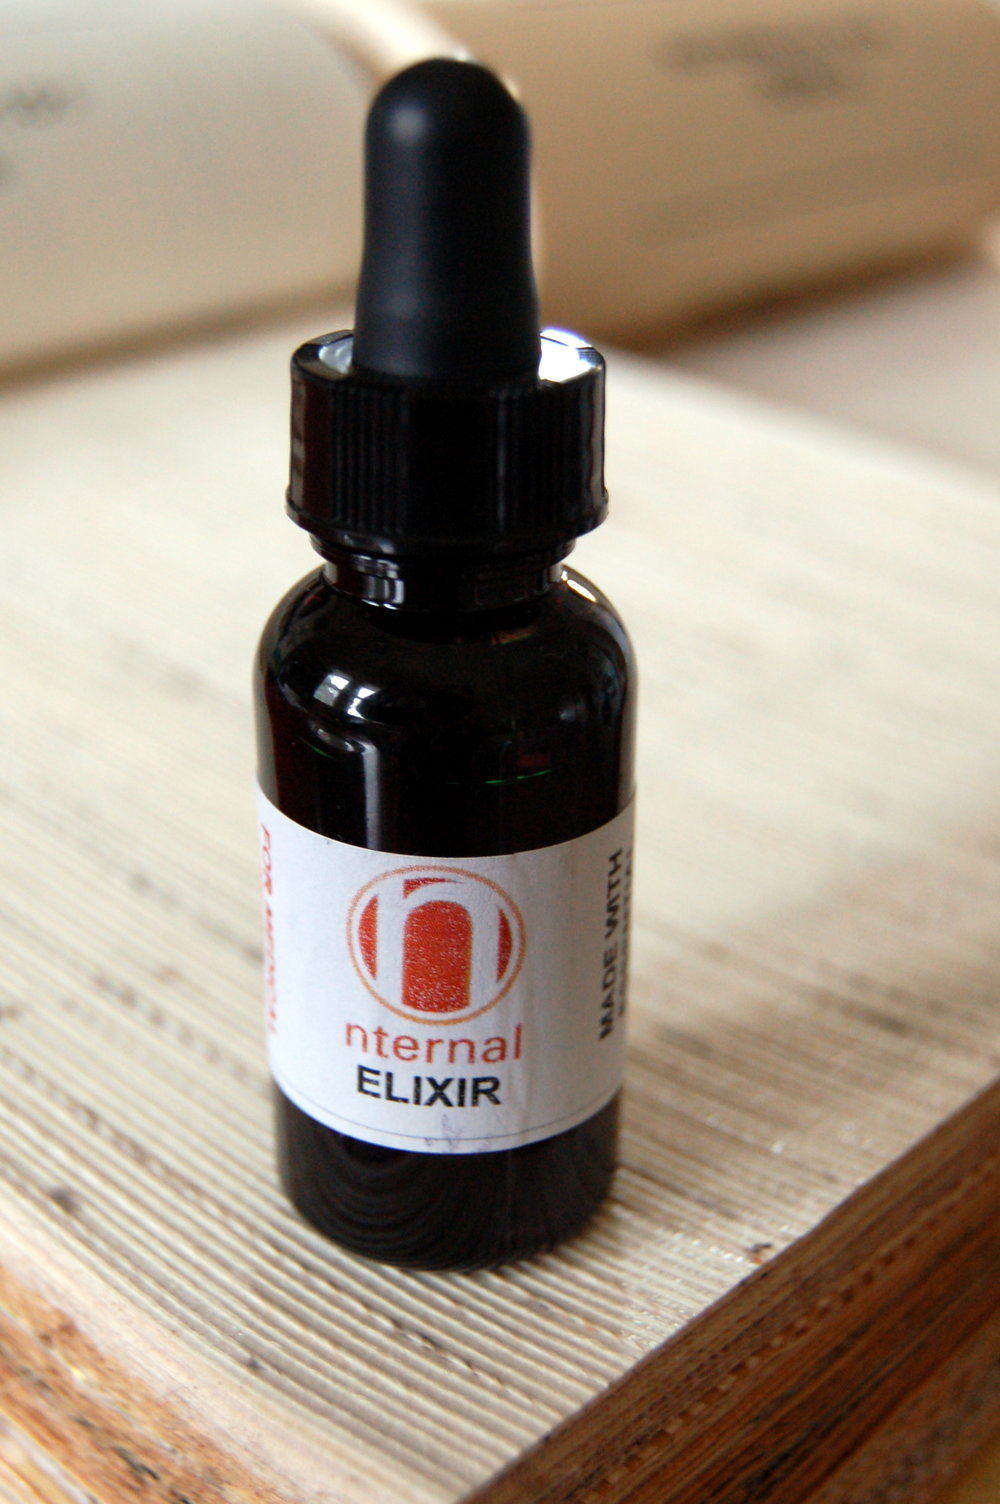 - Nternal Elixir is what I happened to be taking at the time. It's a low-heat, low psychoactive, light oil. Any other light oil or tincture would work the same for me as Valium, for pre-procedure anxiety.Photo: Sharon Letts